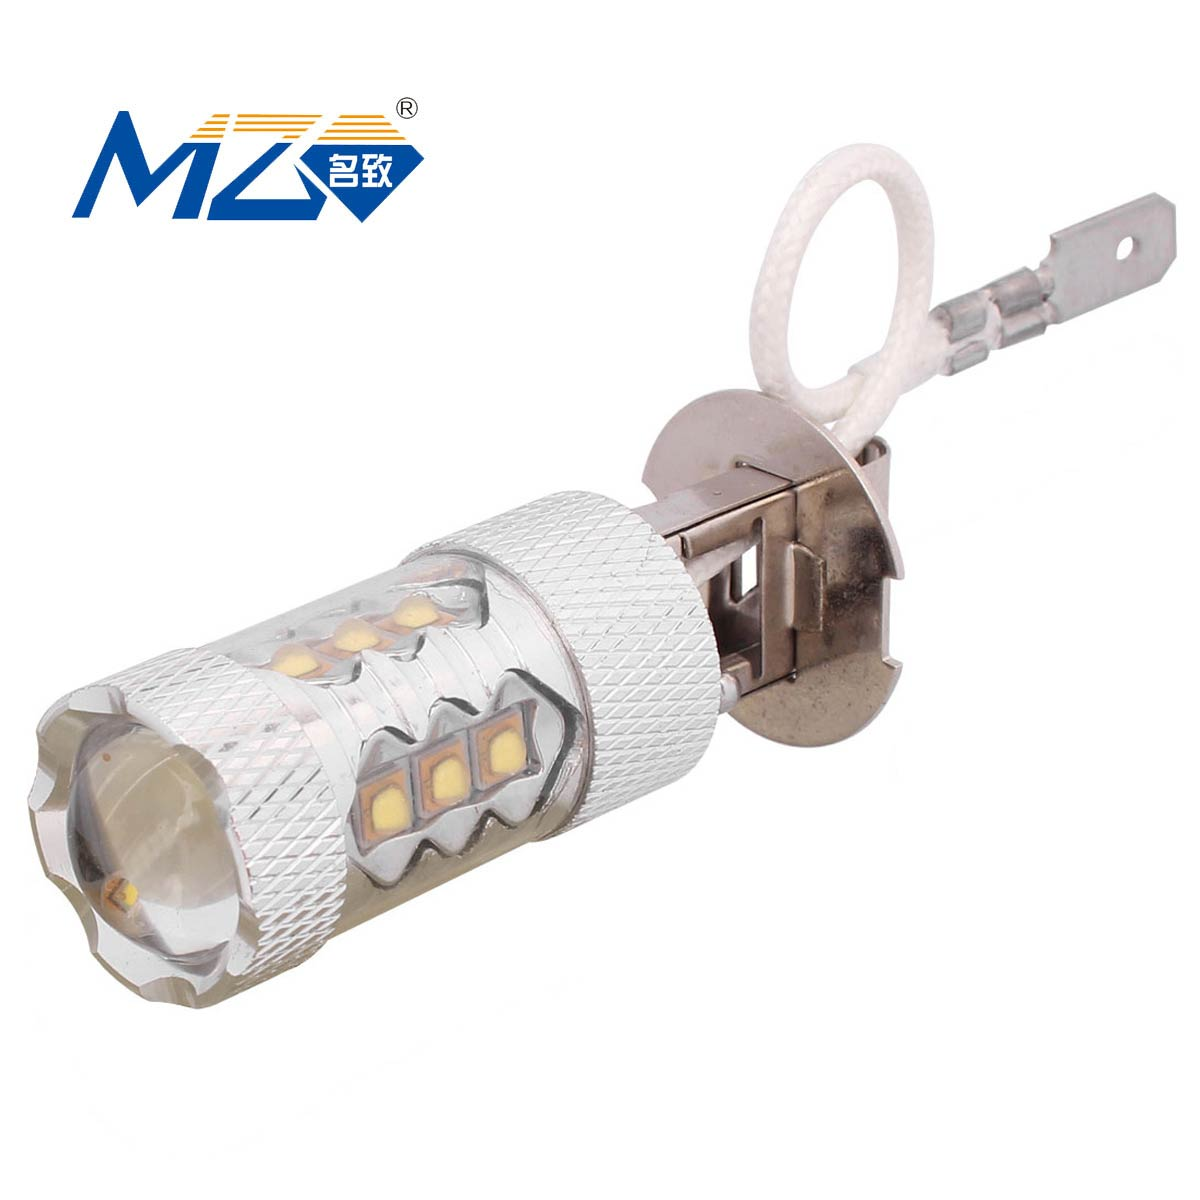 MZ H3 80W 16-XT-E LED Car Front Foglamp White Light Constant Current